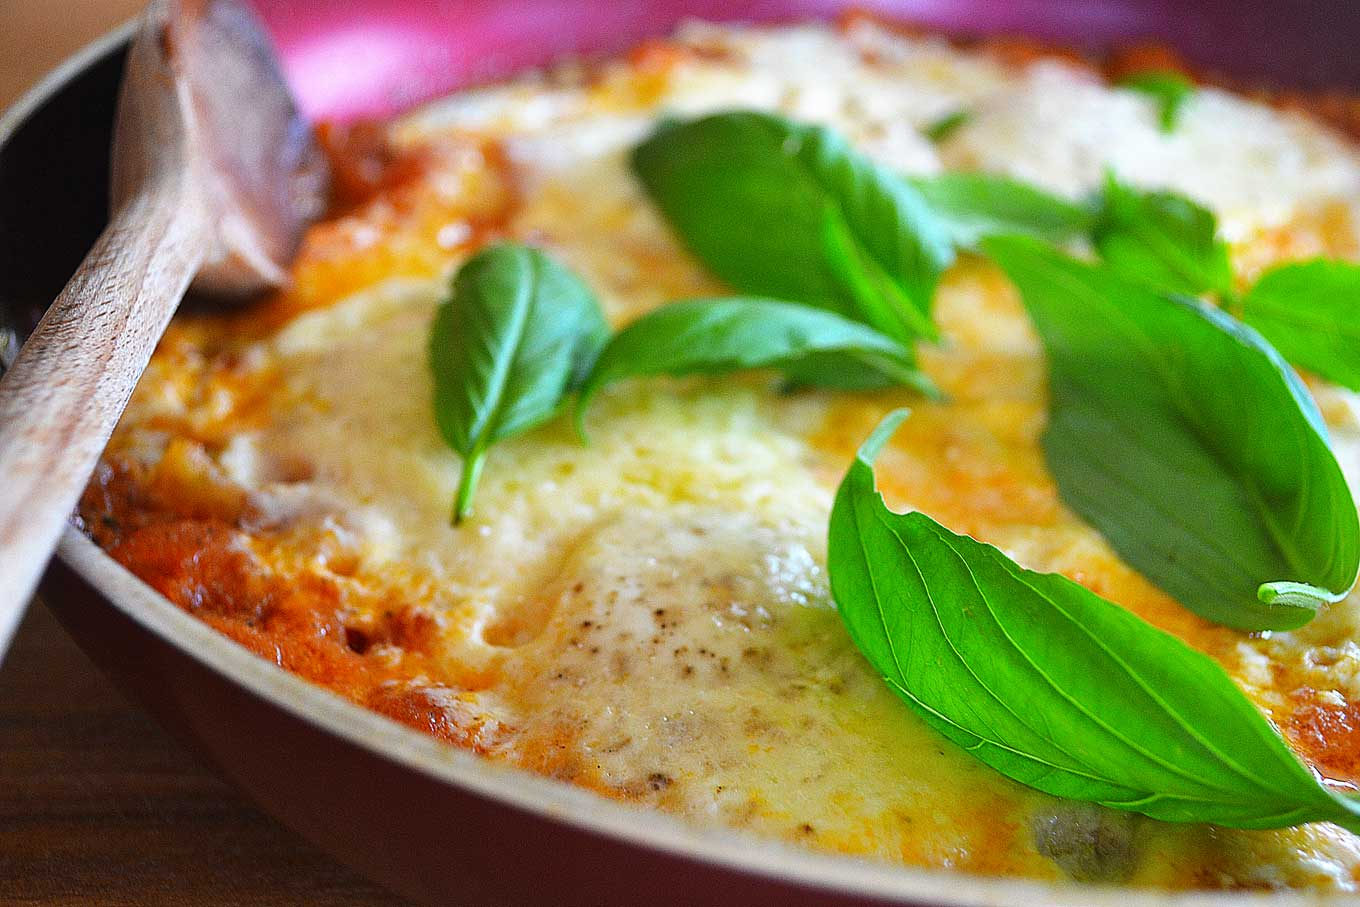 skillet eggs with tomatoes, parmigiano-reggiano & basil | rusticplate.com